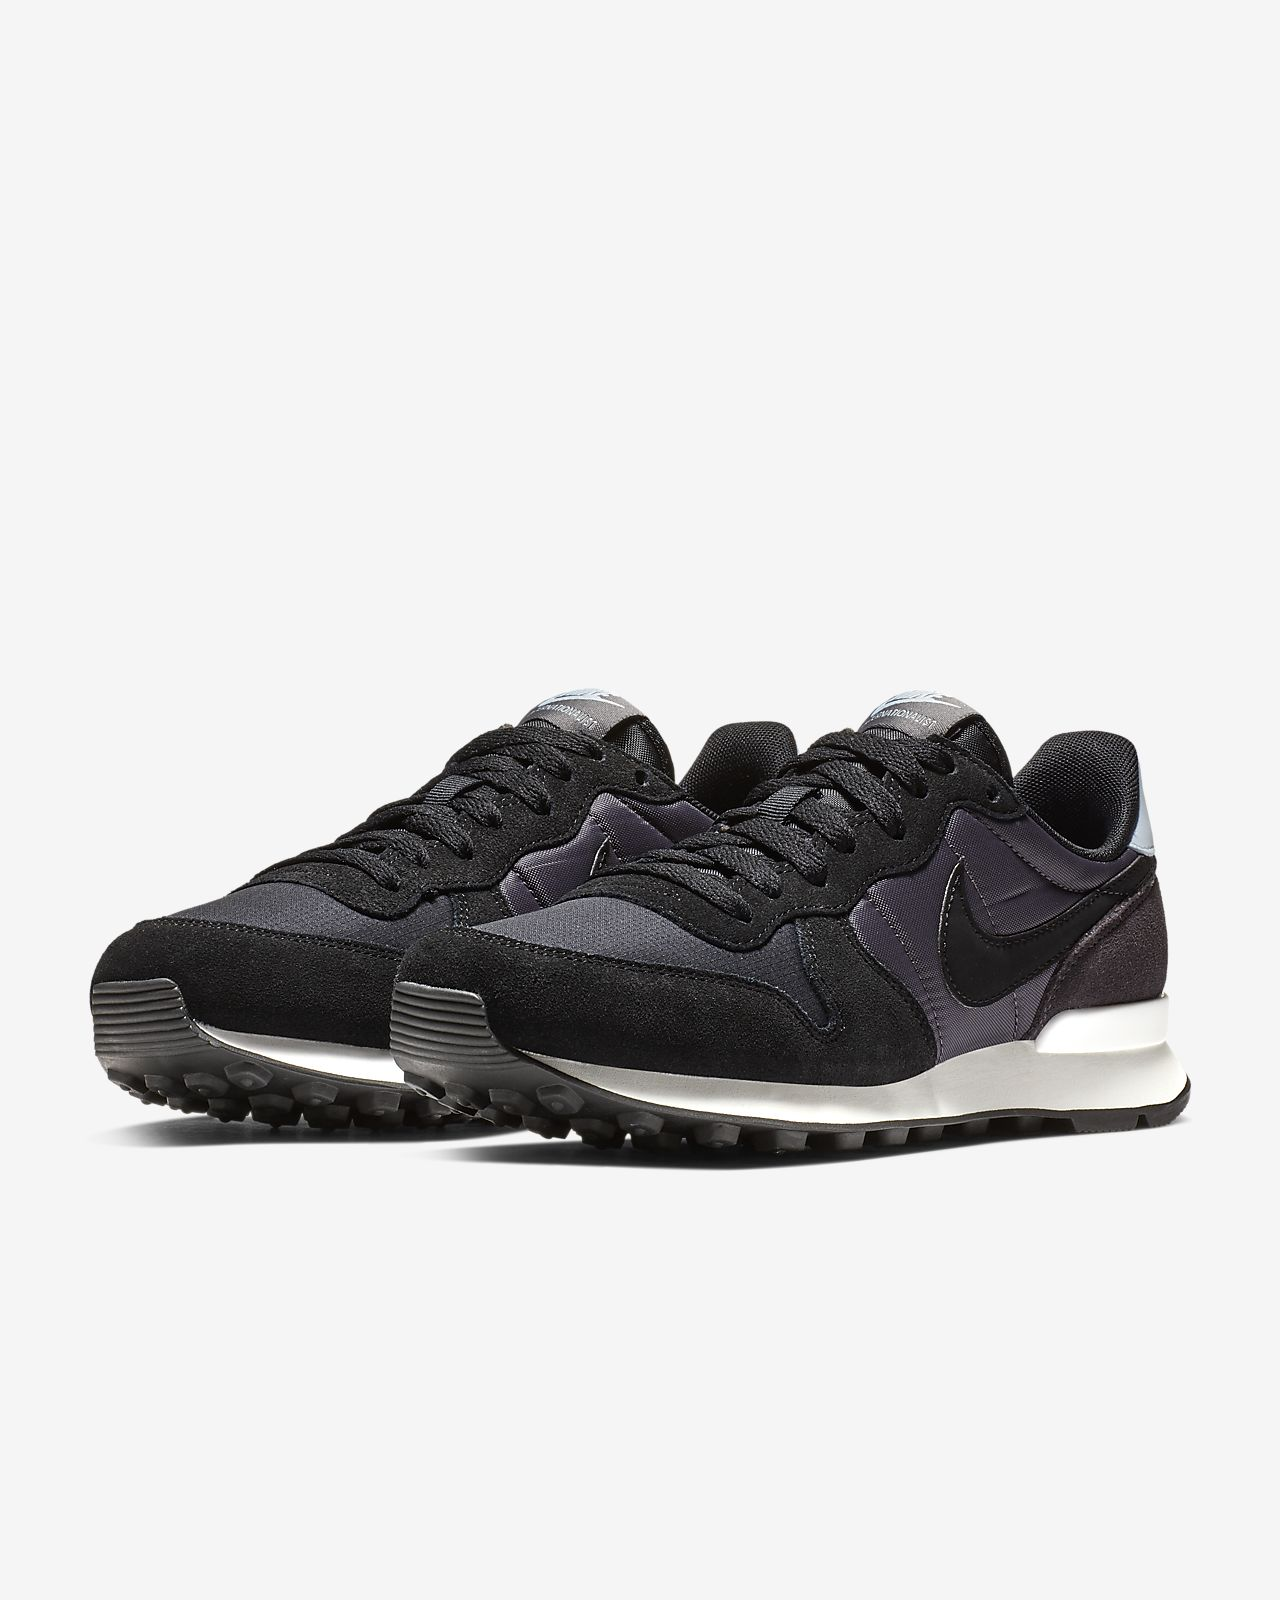 f31ed5566813 Low Resolution Nike Internationalist Women s Shoe Nike Internationalist  Women s Shoe